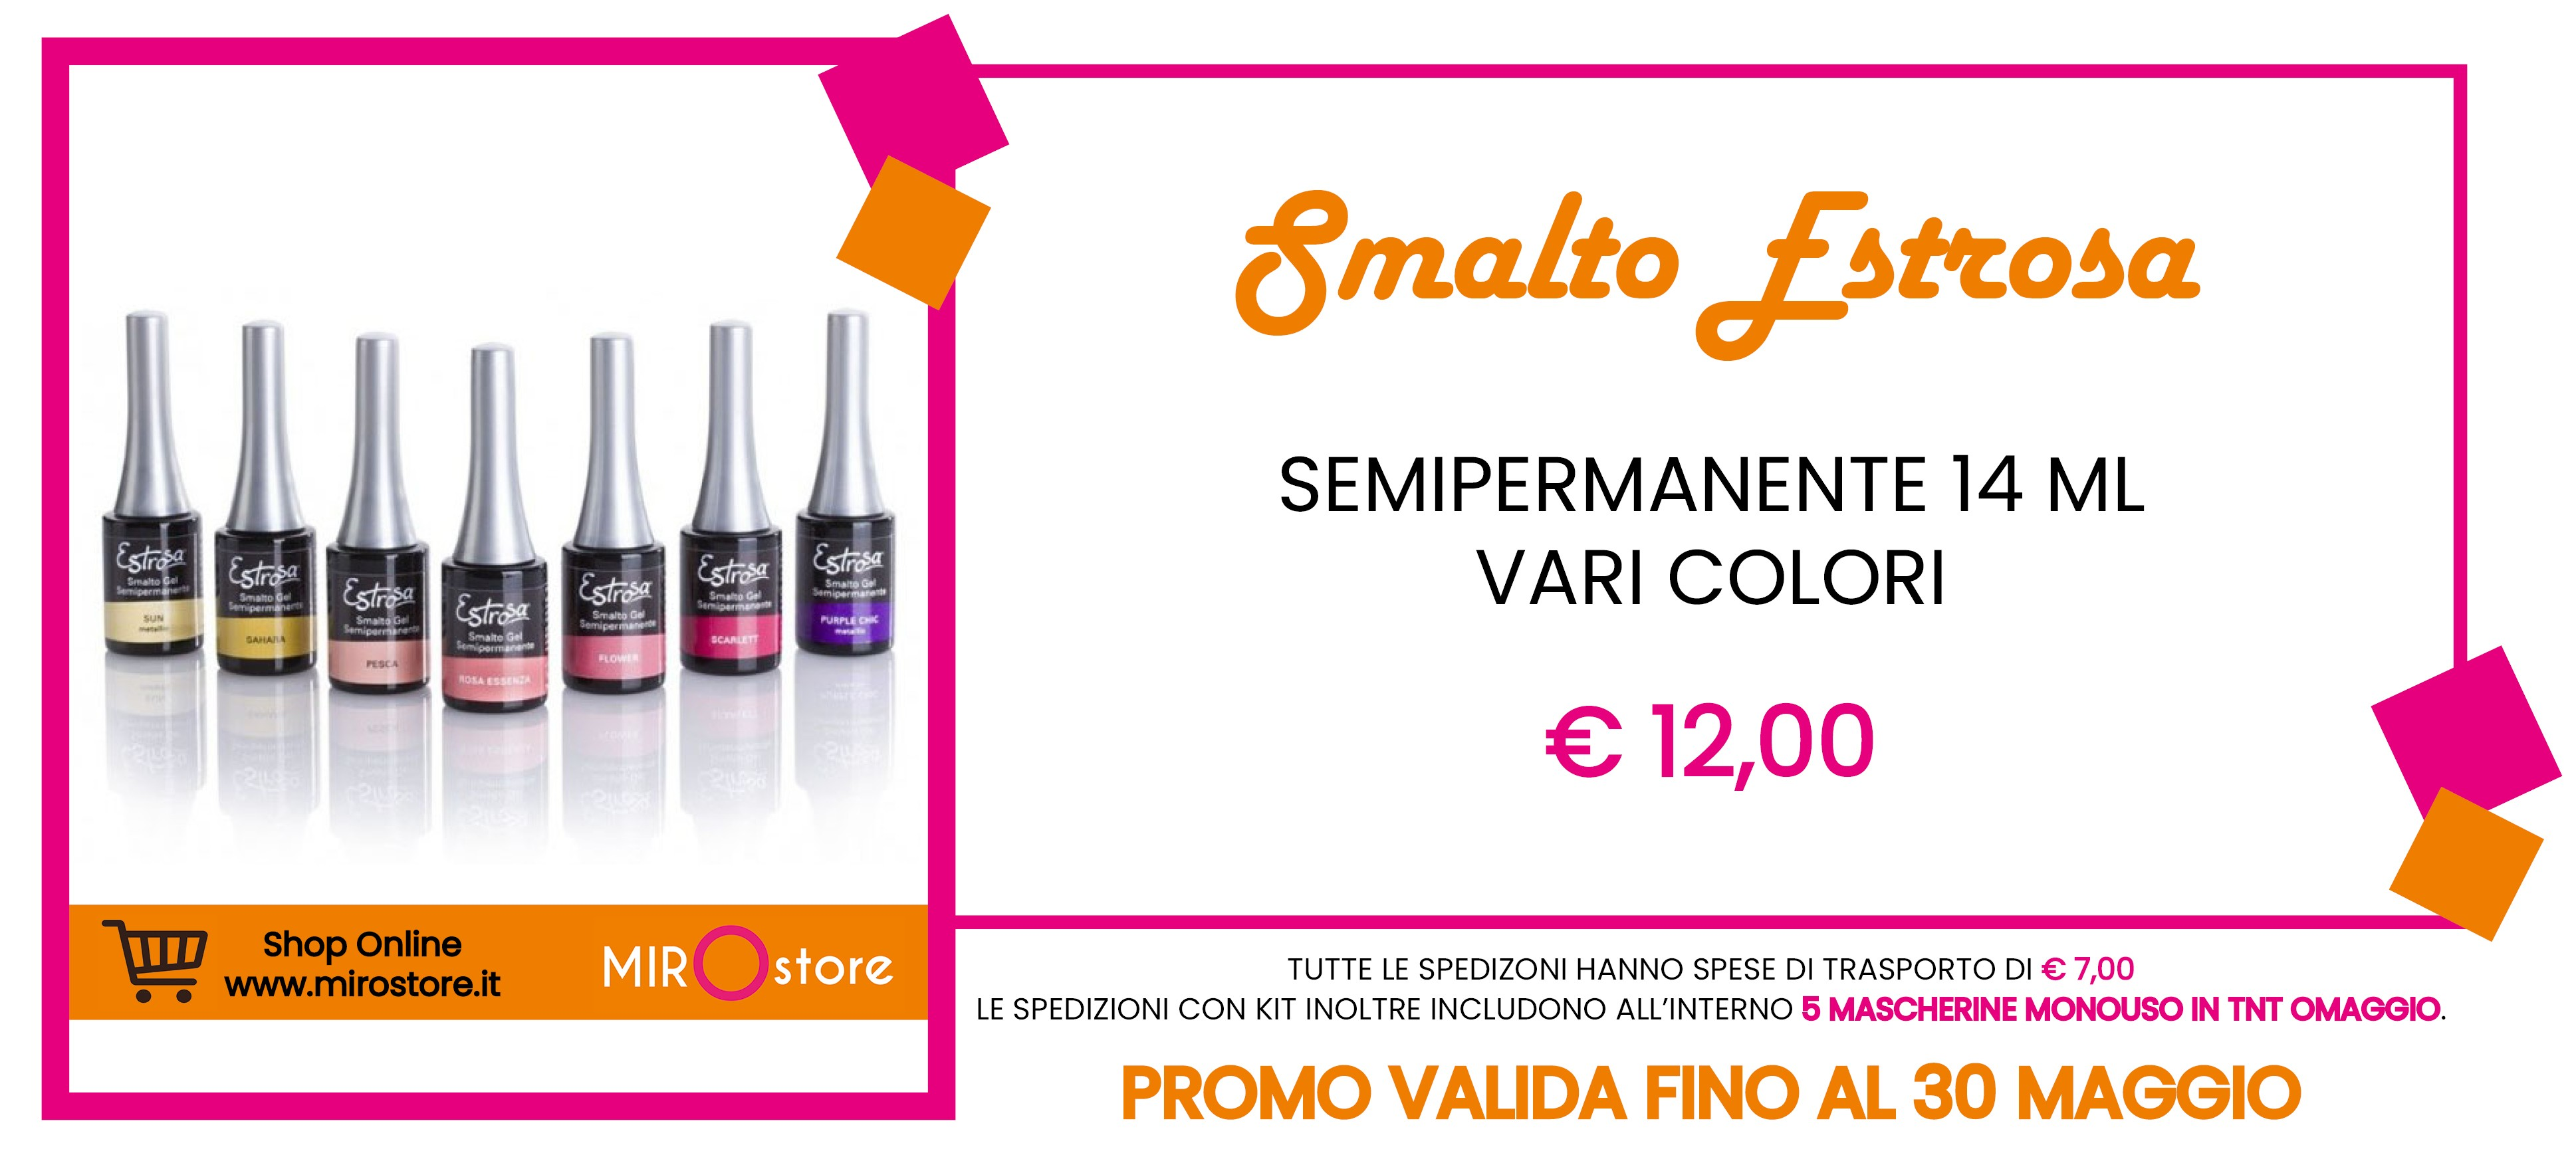 smalto estrosa